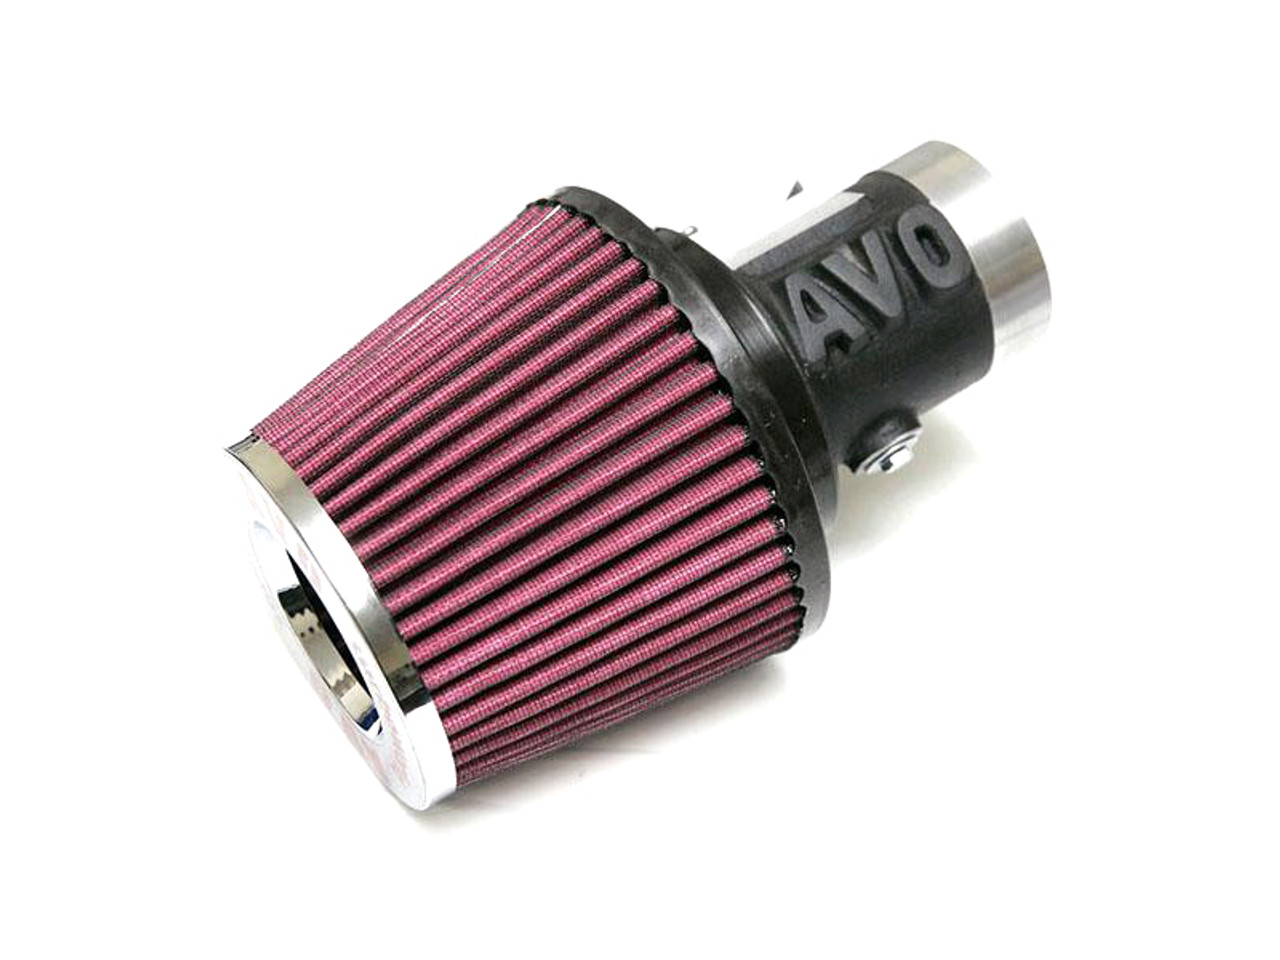 Intake Power Filter Kit	Impreza	2.5i	EJ253	S2C08G42A070T